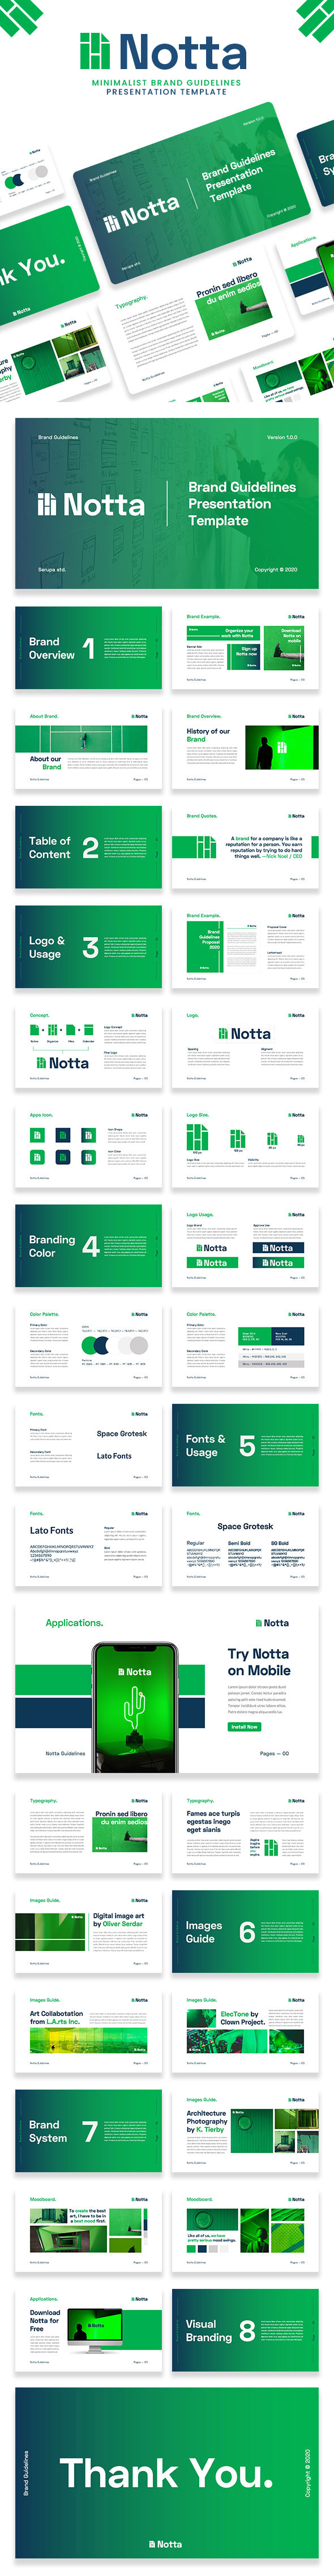 Notta – Brand Guidelines Powerpoint Template